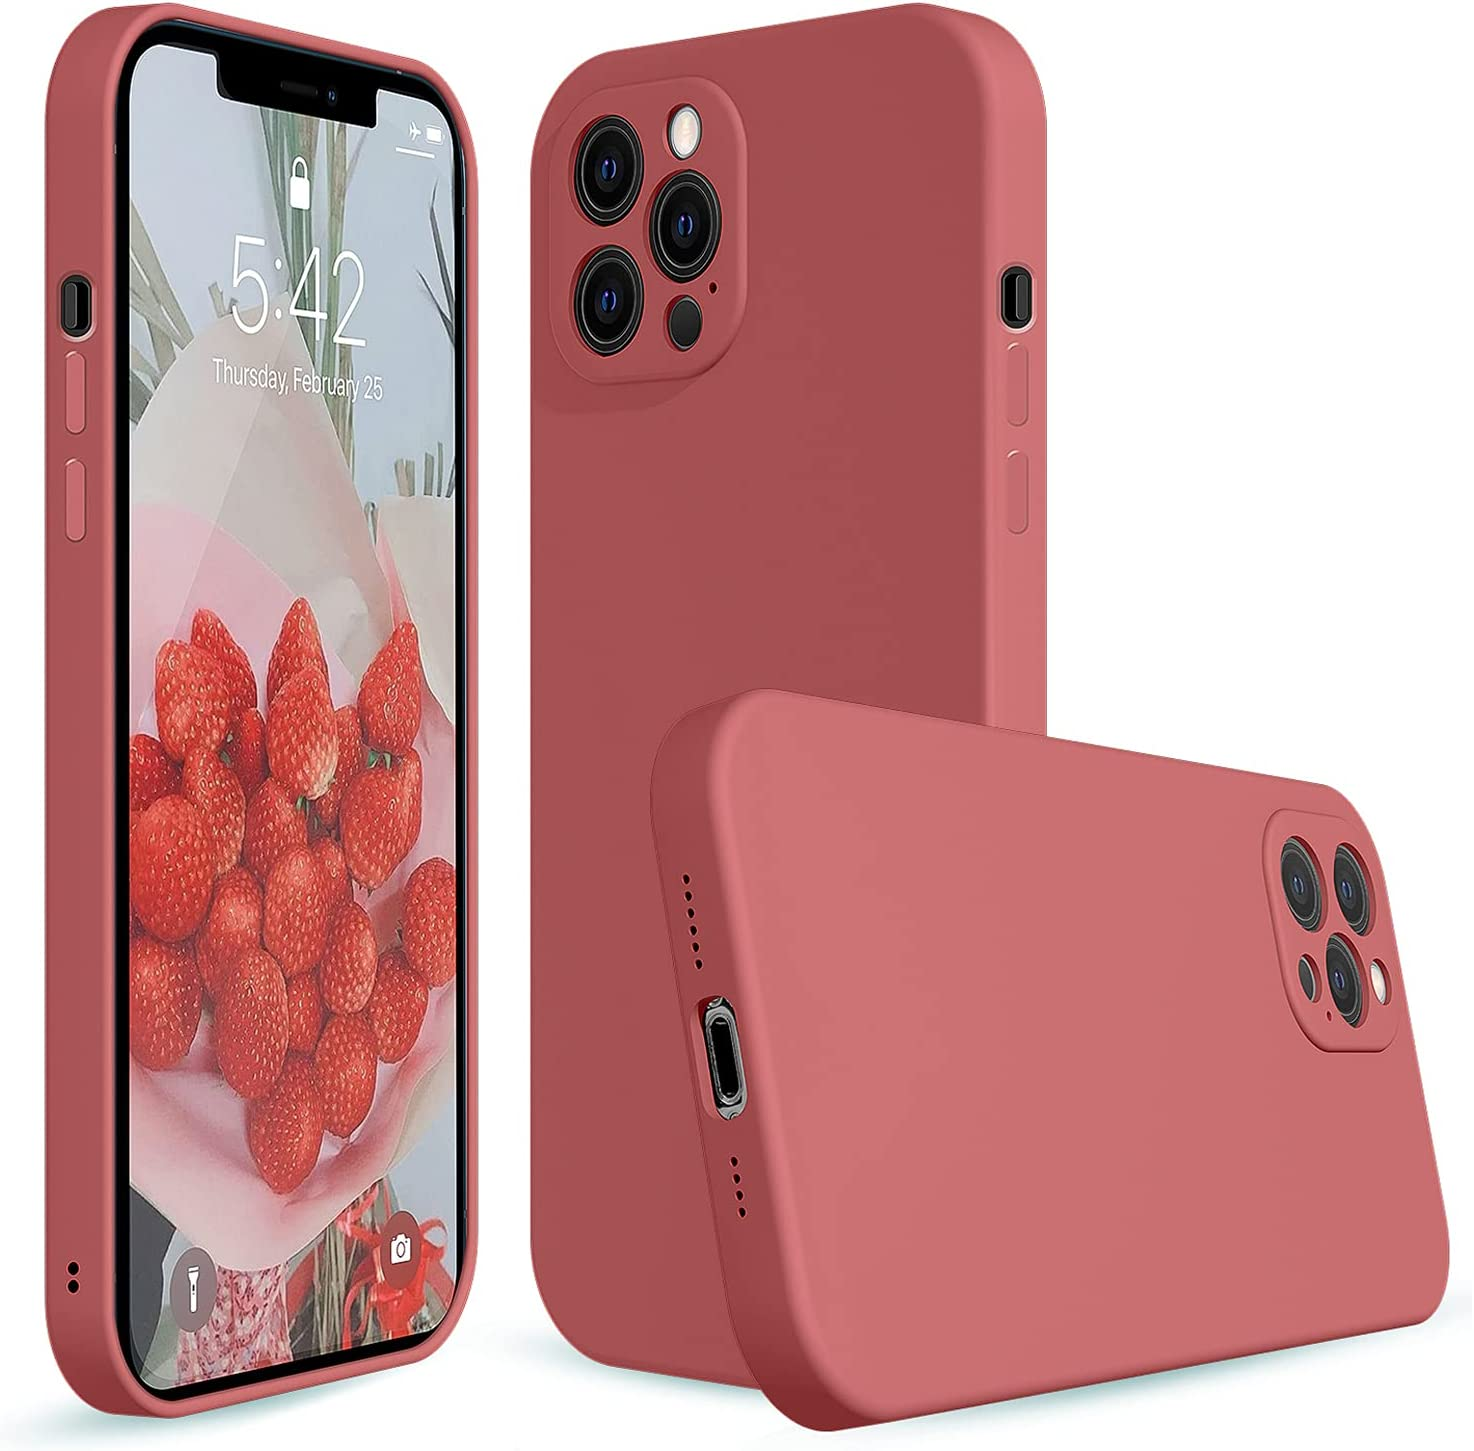 iPhone 12 Pro Silicone Case Camellia,Liquid Silicone Case Compatible with iPhone 12 Pro,Protective Cover Case for iPhone 12pro Camellia 6.1 Inch